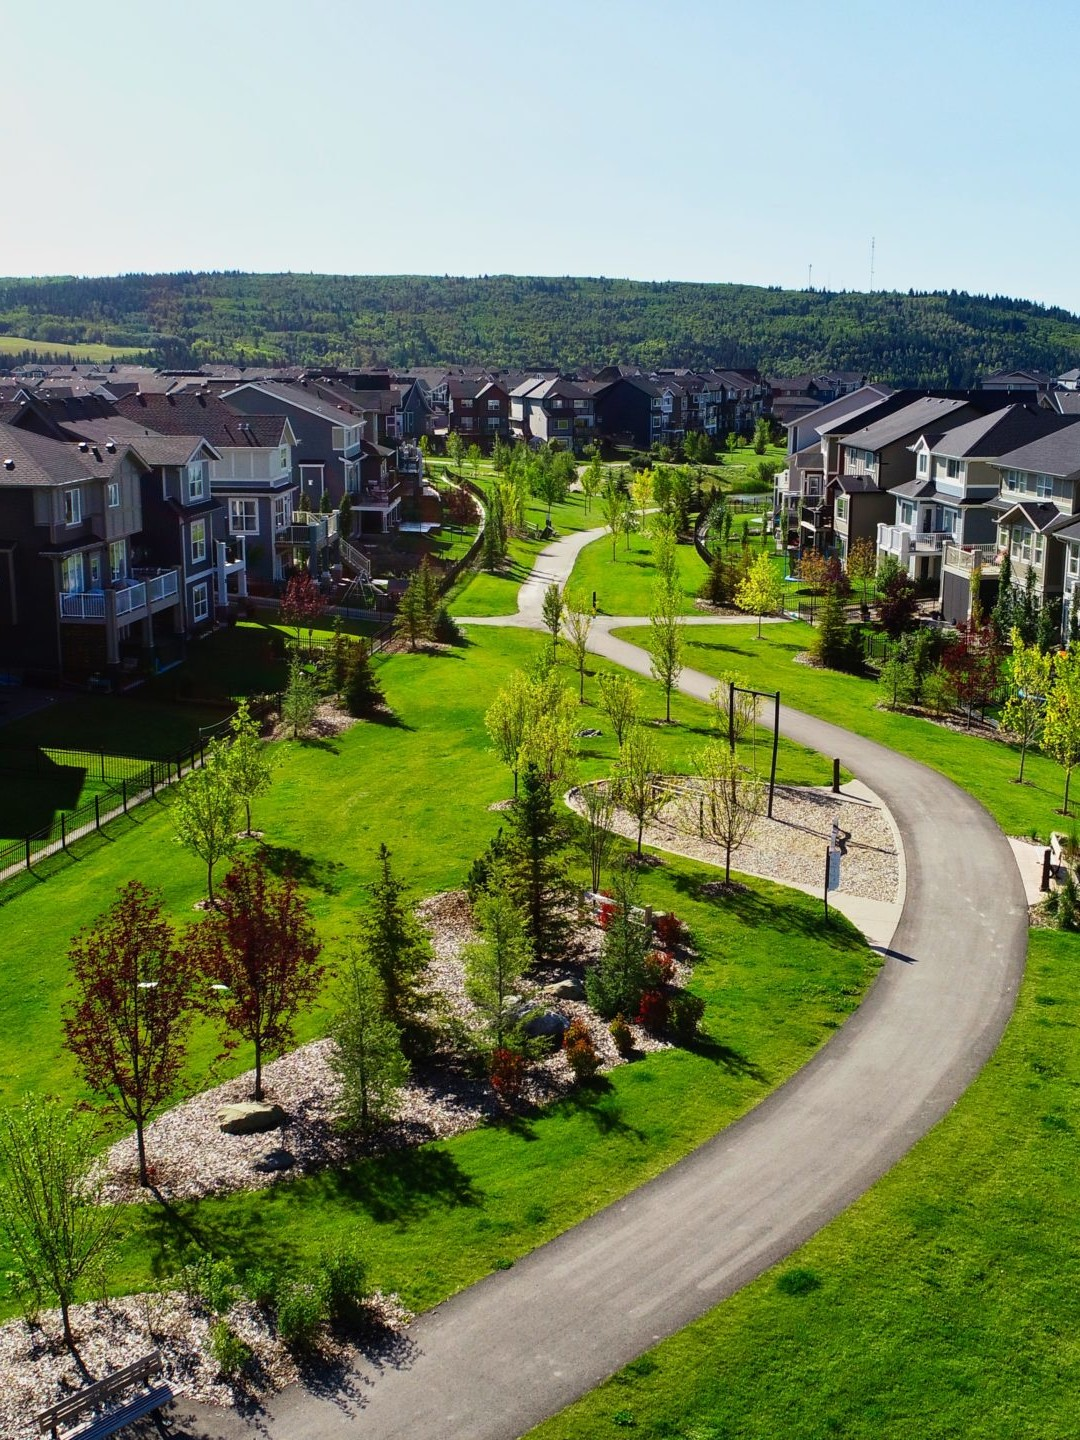 A multi-use path winds through the community of Sunset Ridge. The path is lushly landscaped, dotted with picnic tables and benches, and features bollard lighting for evening safety.